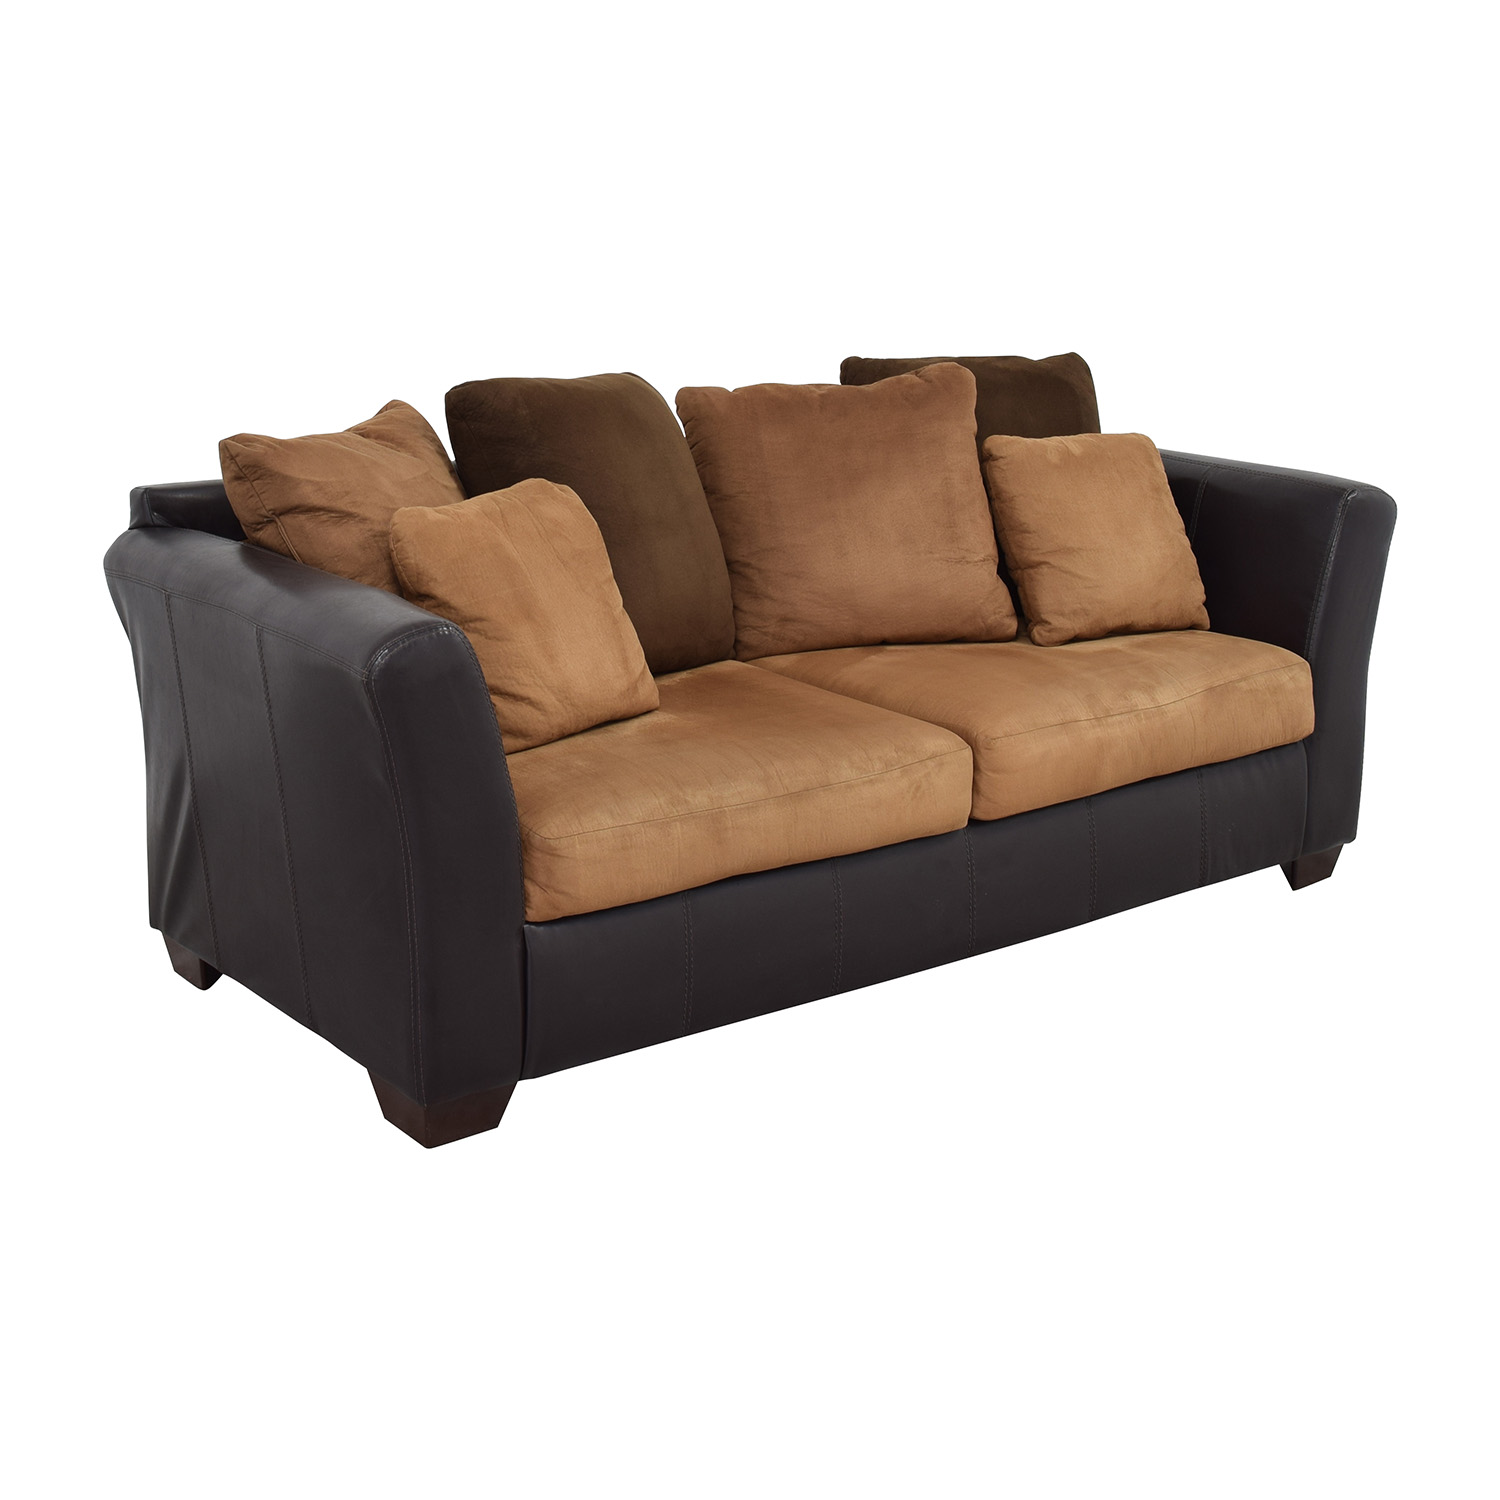 furniture design designing home decoration ideas amazing bed top sofas in ashley a sofa room cupboard